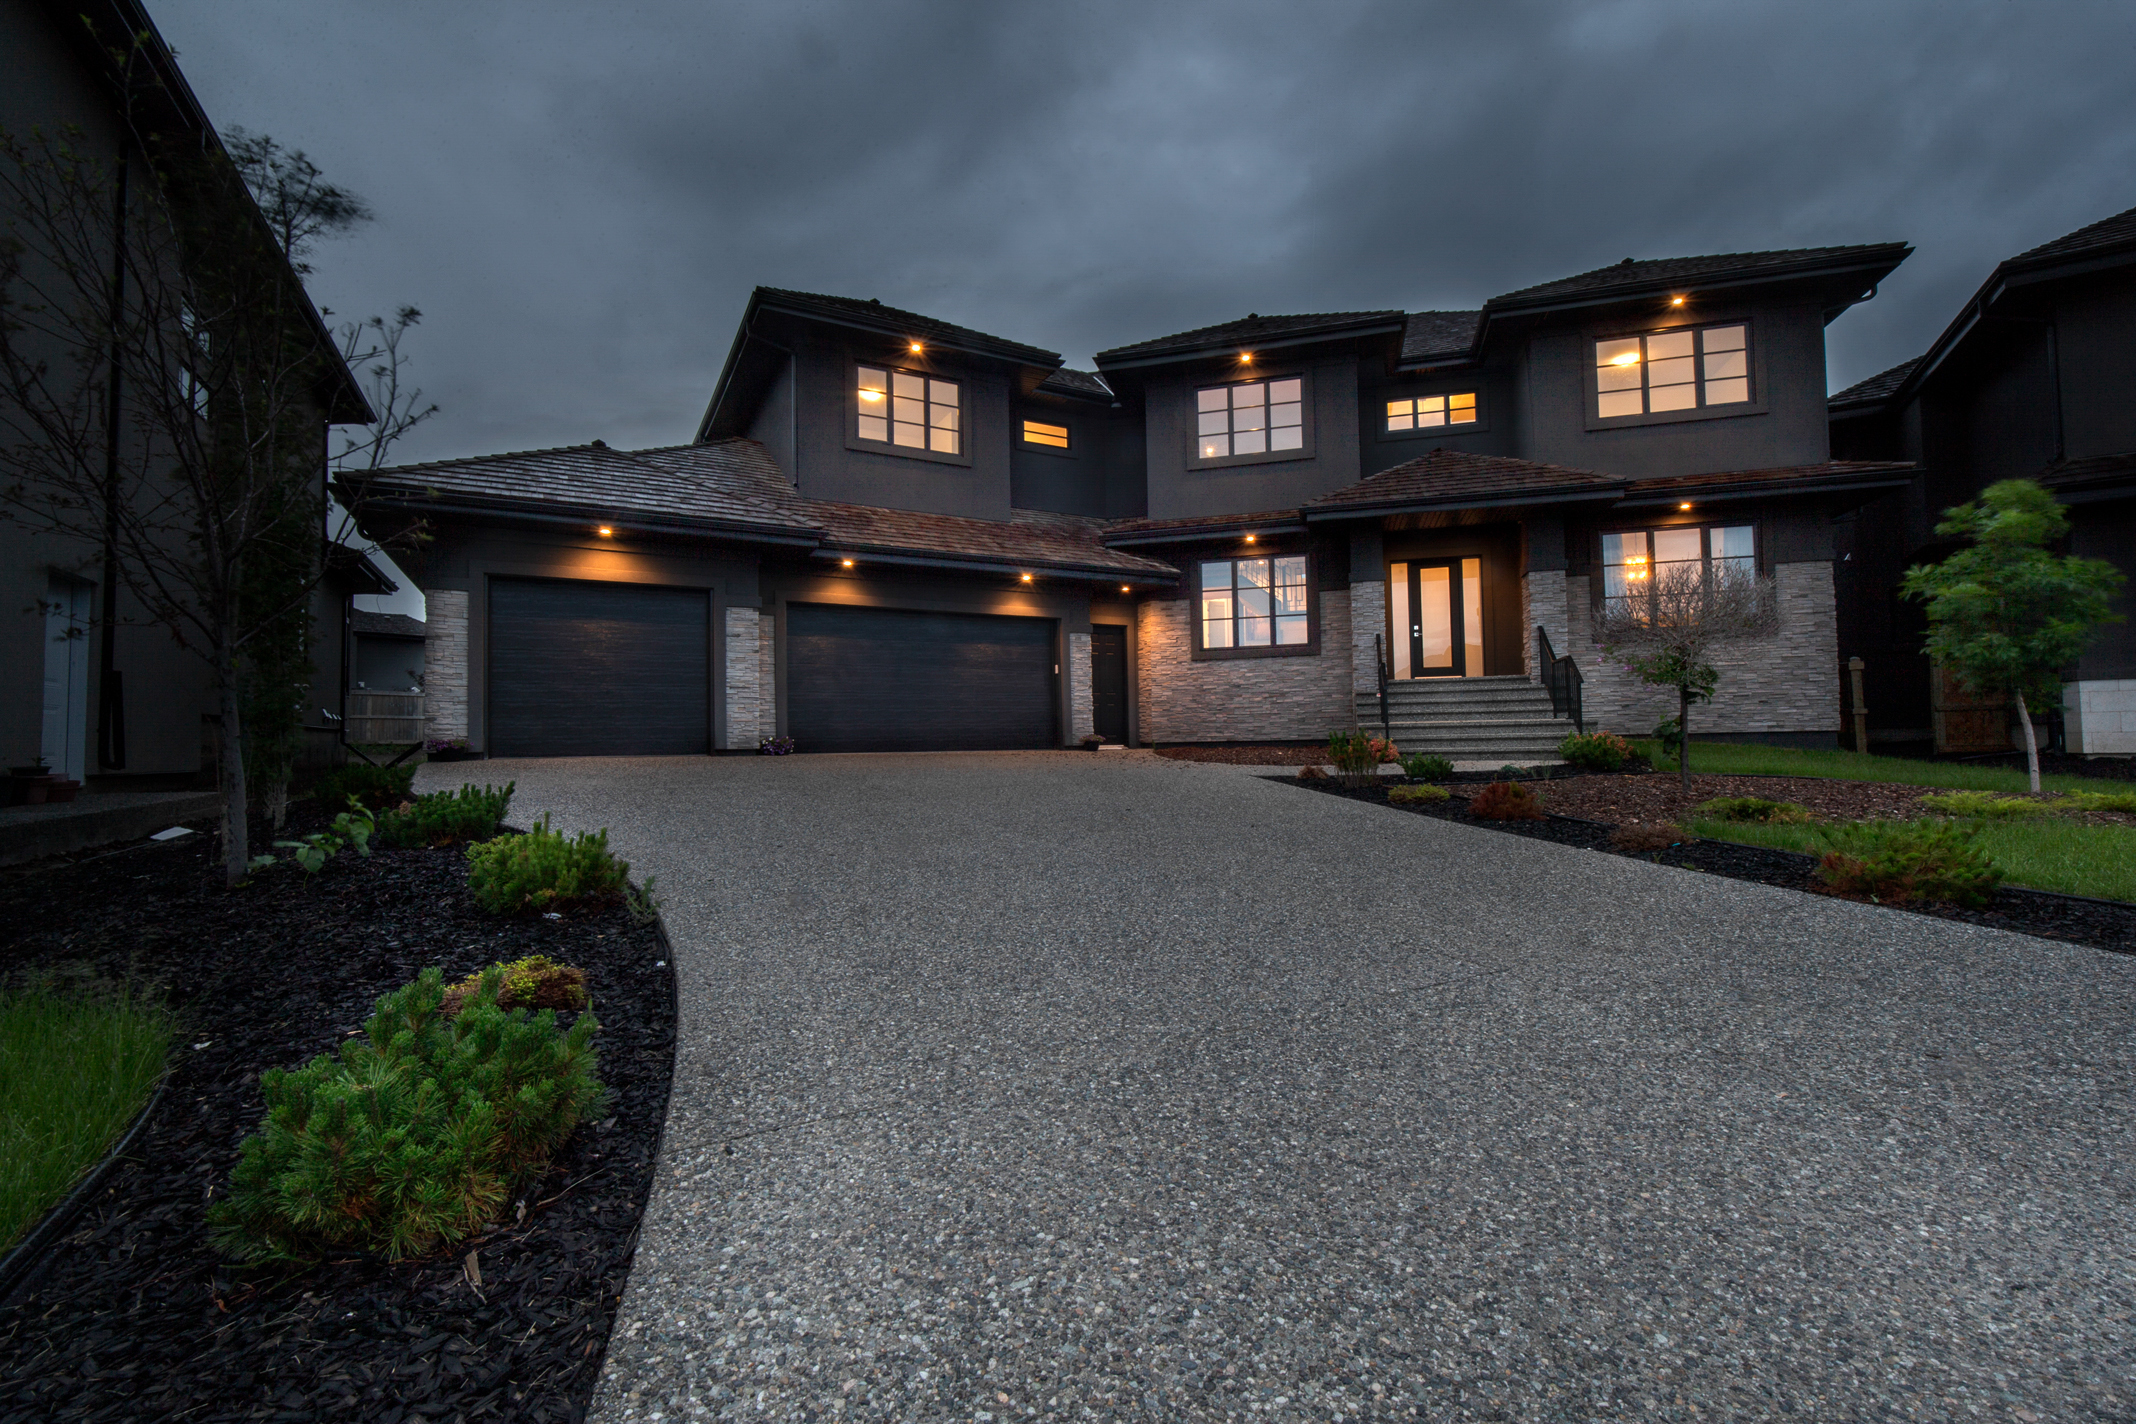 Windermere Real Estate for Sale: Homes for sale including Windermere Drive, Upper Windermere, Windermere One, Keswick Area, Ambleside, Glenridding Heights, Glenridding Ravine and area!